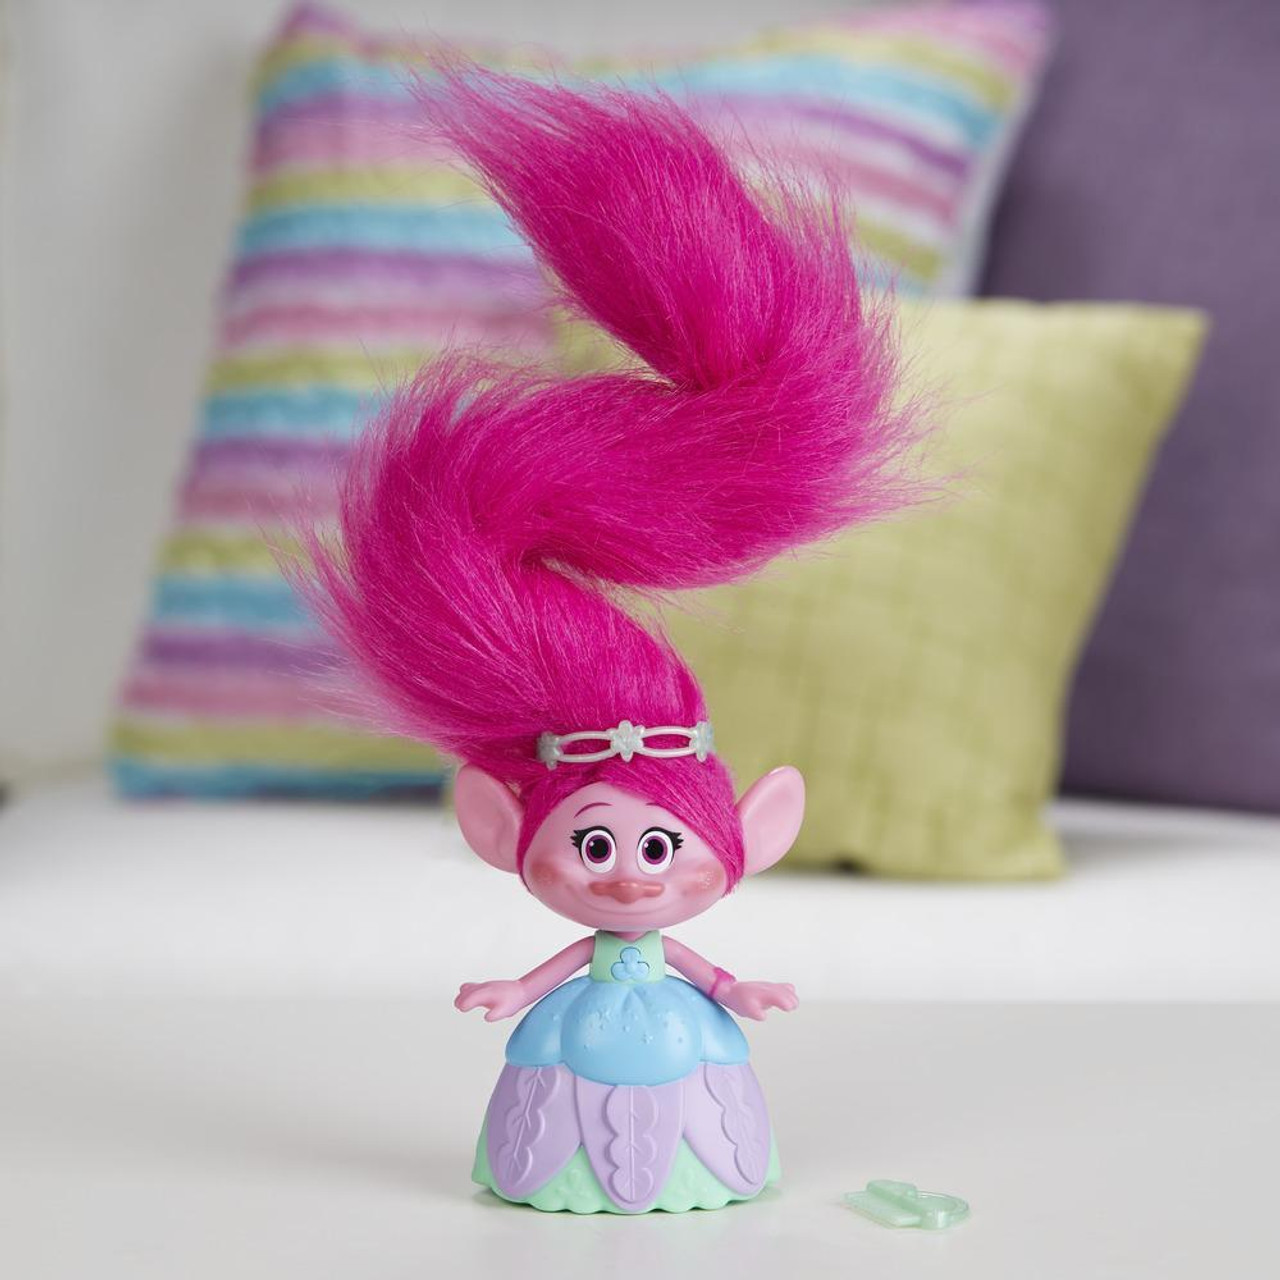 Hasbro C1305as00 Dreamworks Trolls Hair In The Air Poppy Purple